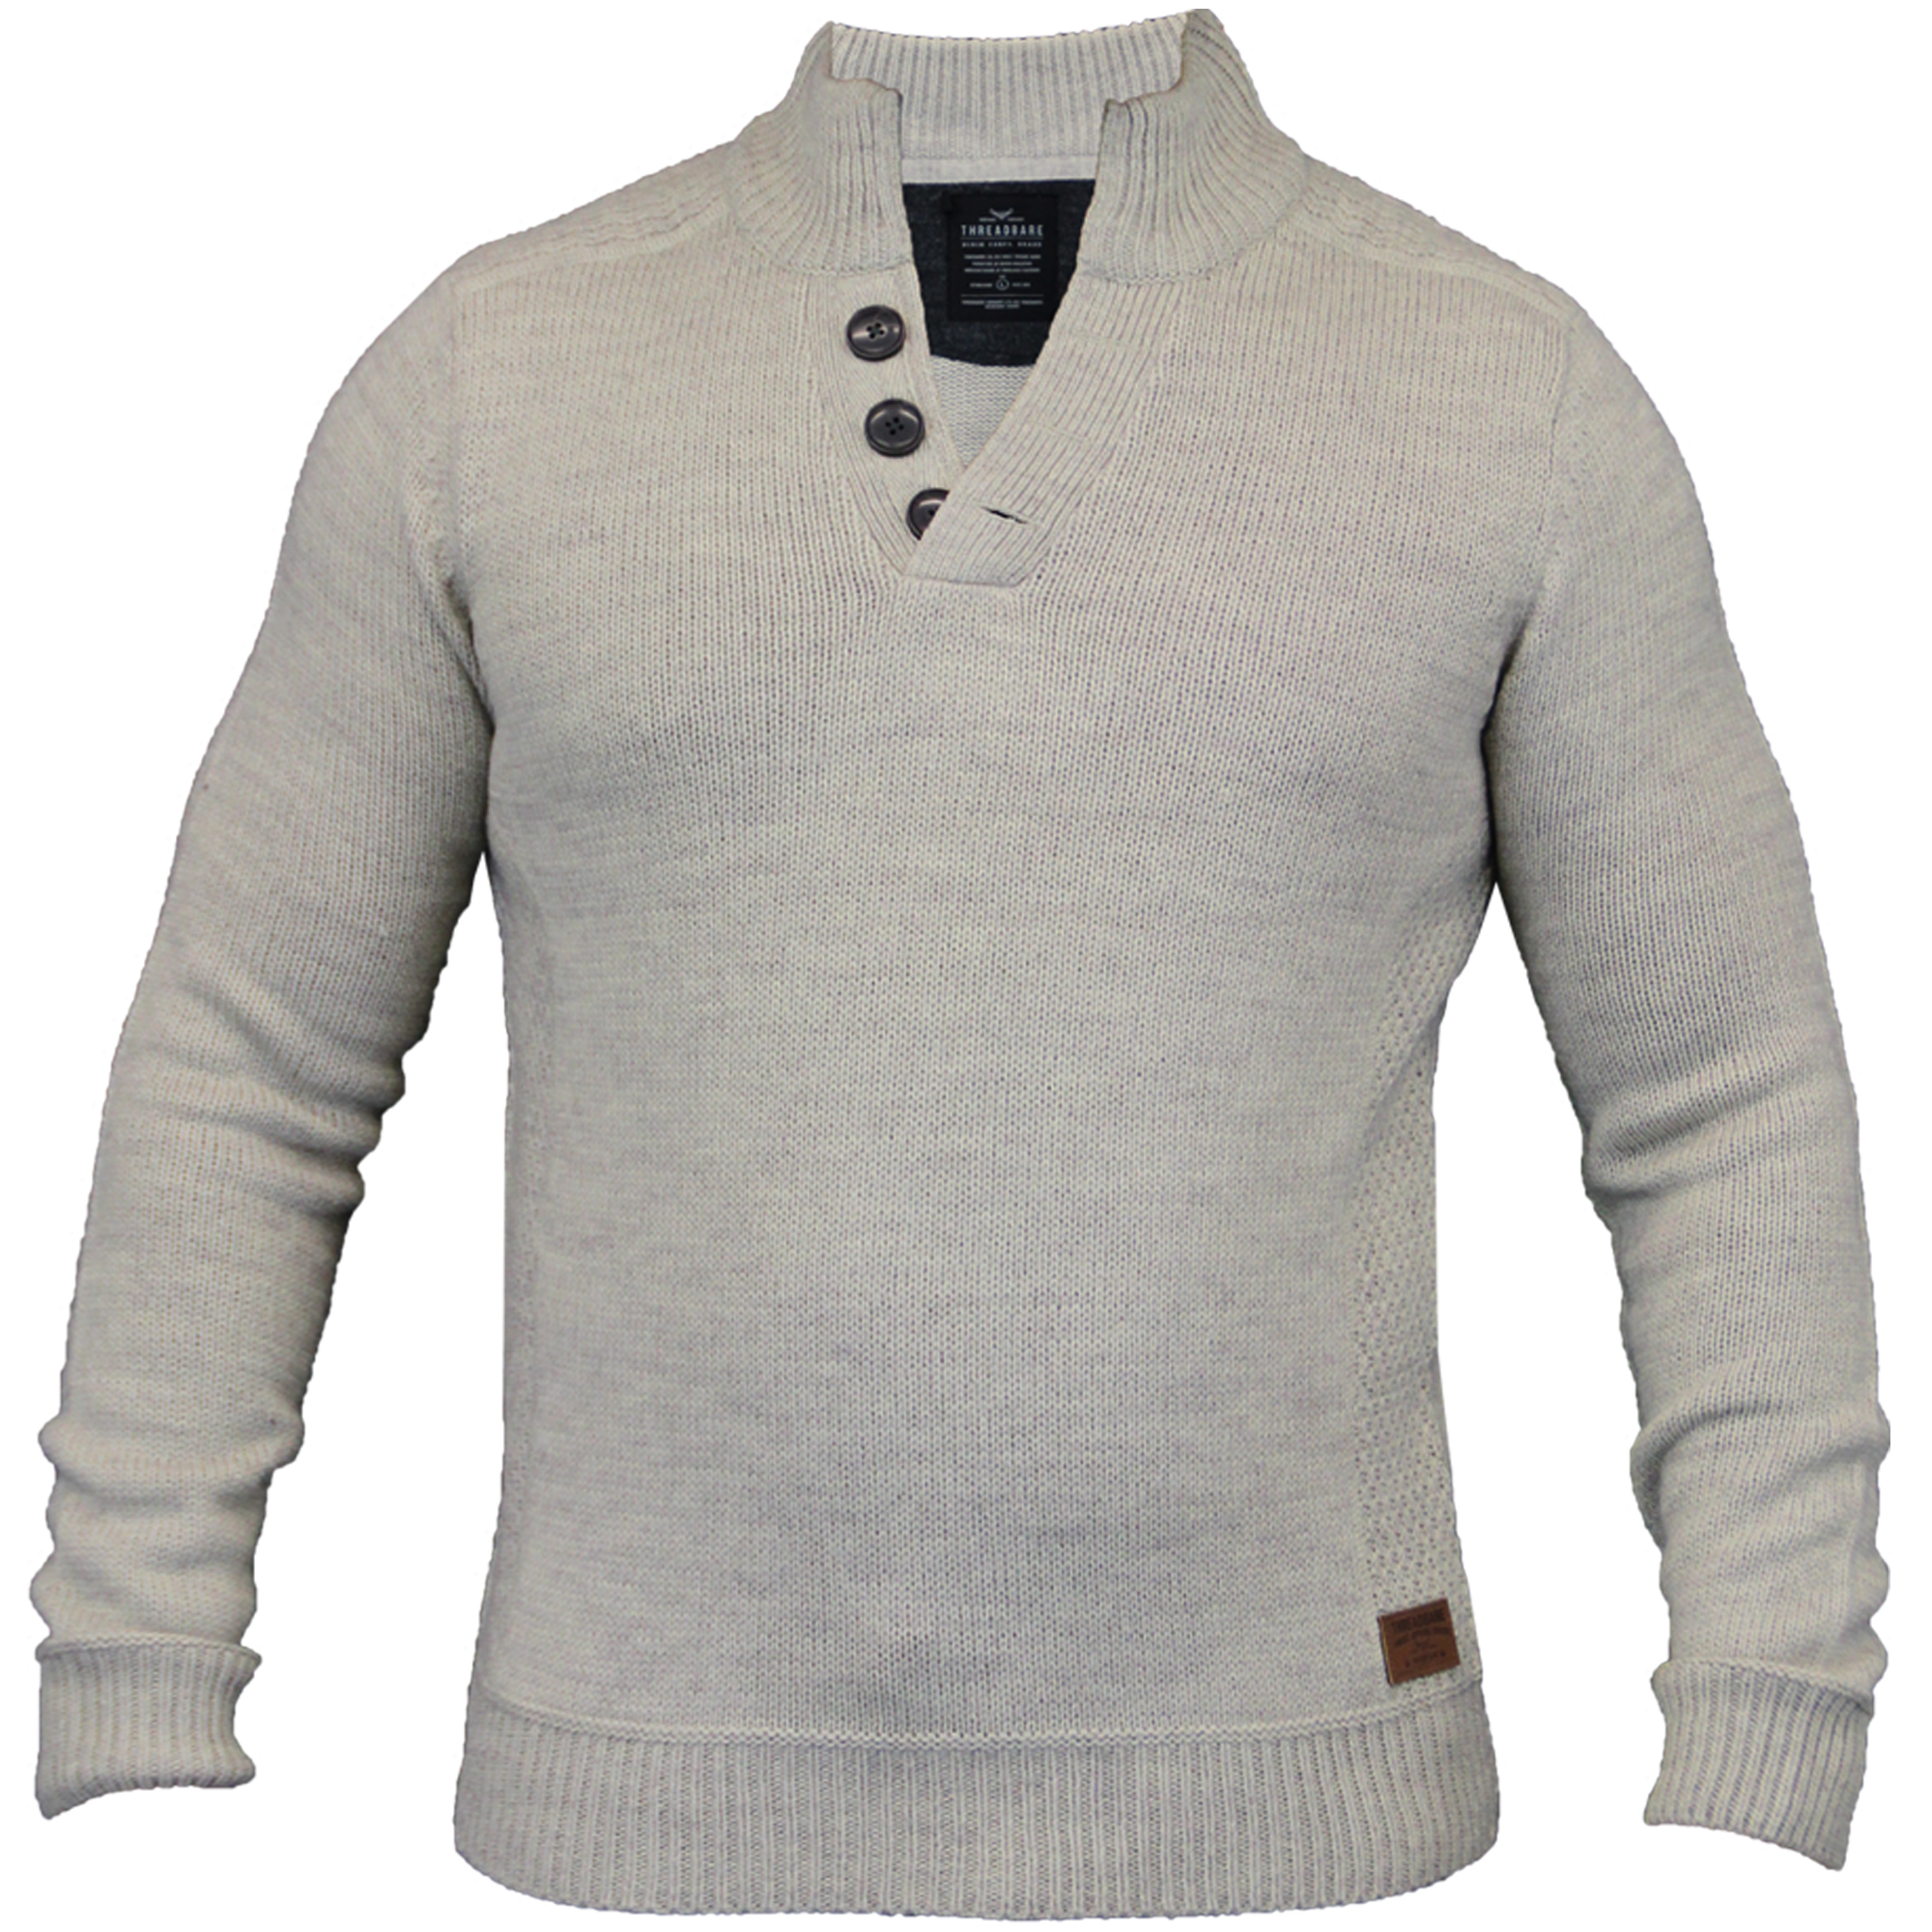 Men; Men's Jumpers & Cardigans; Open filters. Hide out of stock products. Hide out of stock products. Funnel. Button John Lewis & Partners Premium Cashmere Crew Neck Jumper. £ View this product in other colours by selecting one of the following.